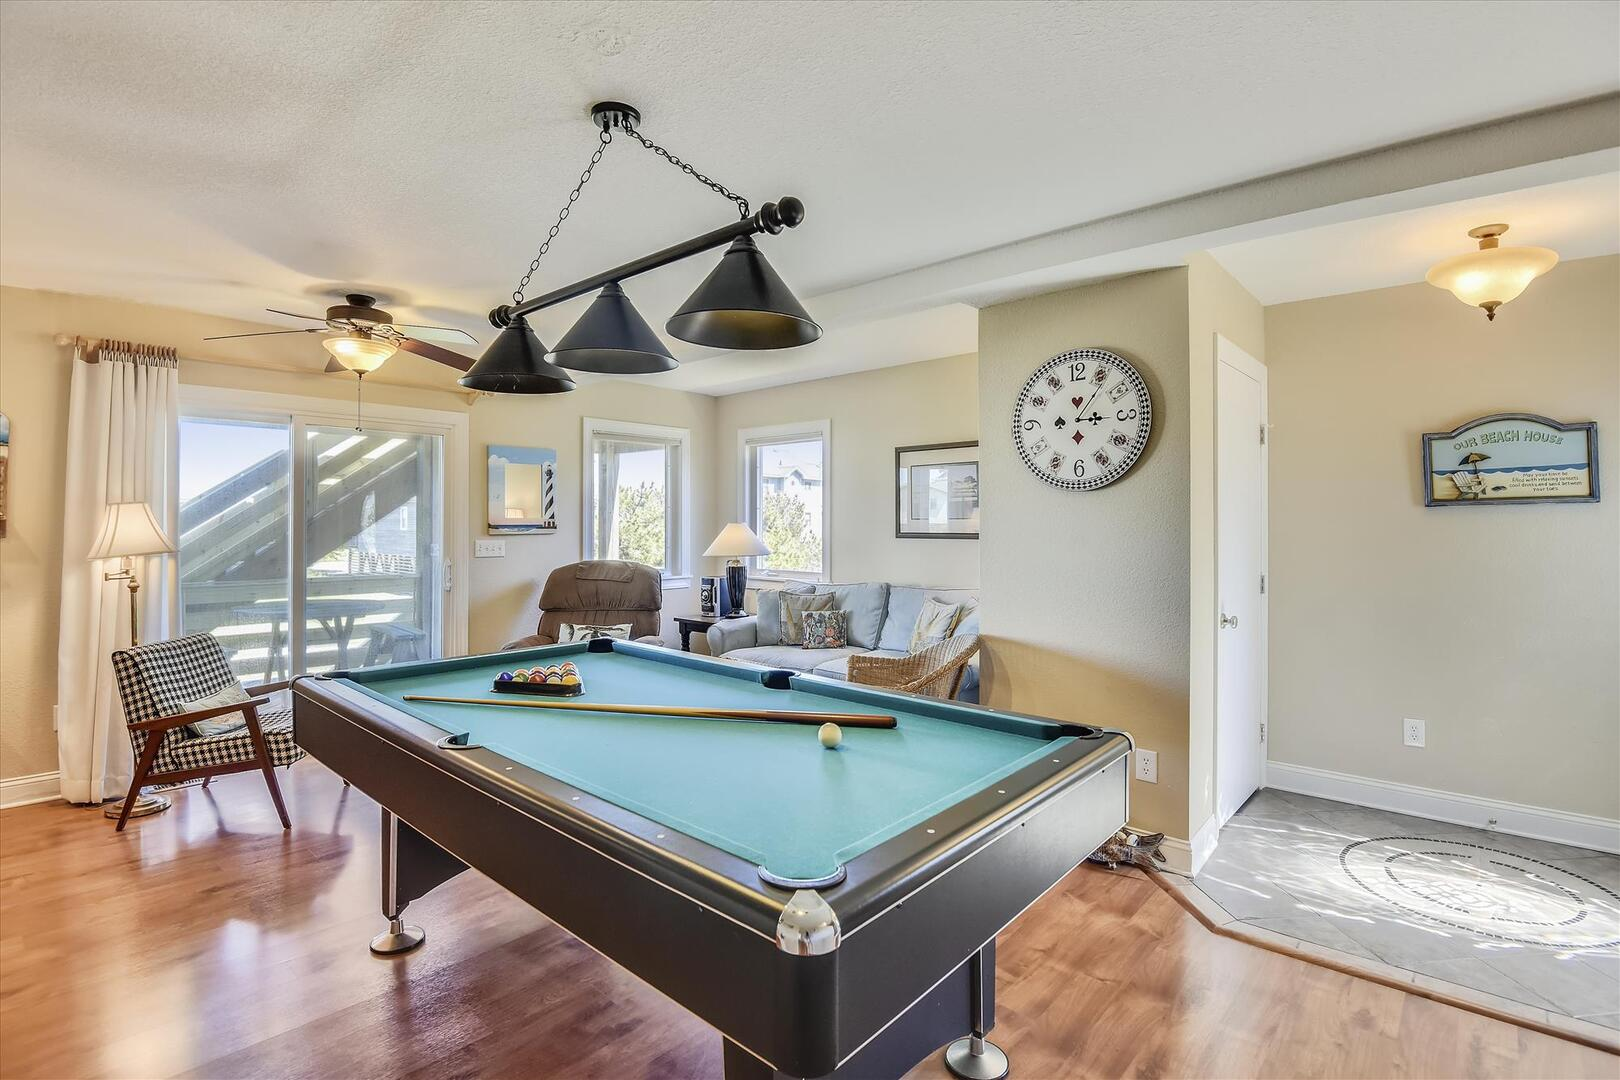 Entry Level,Pool Table,